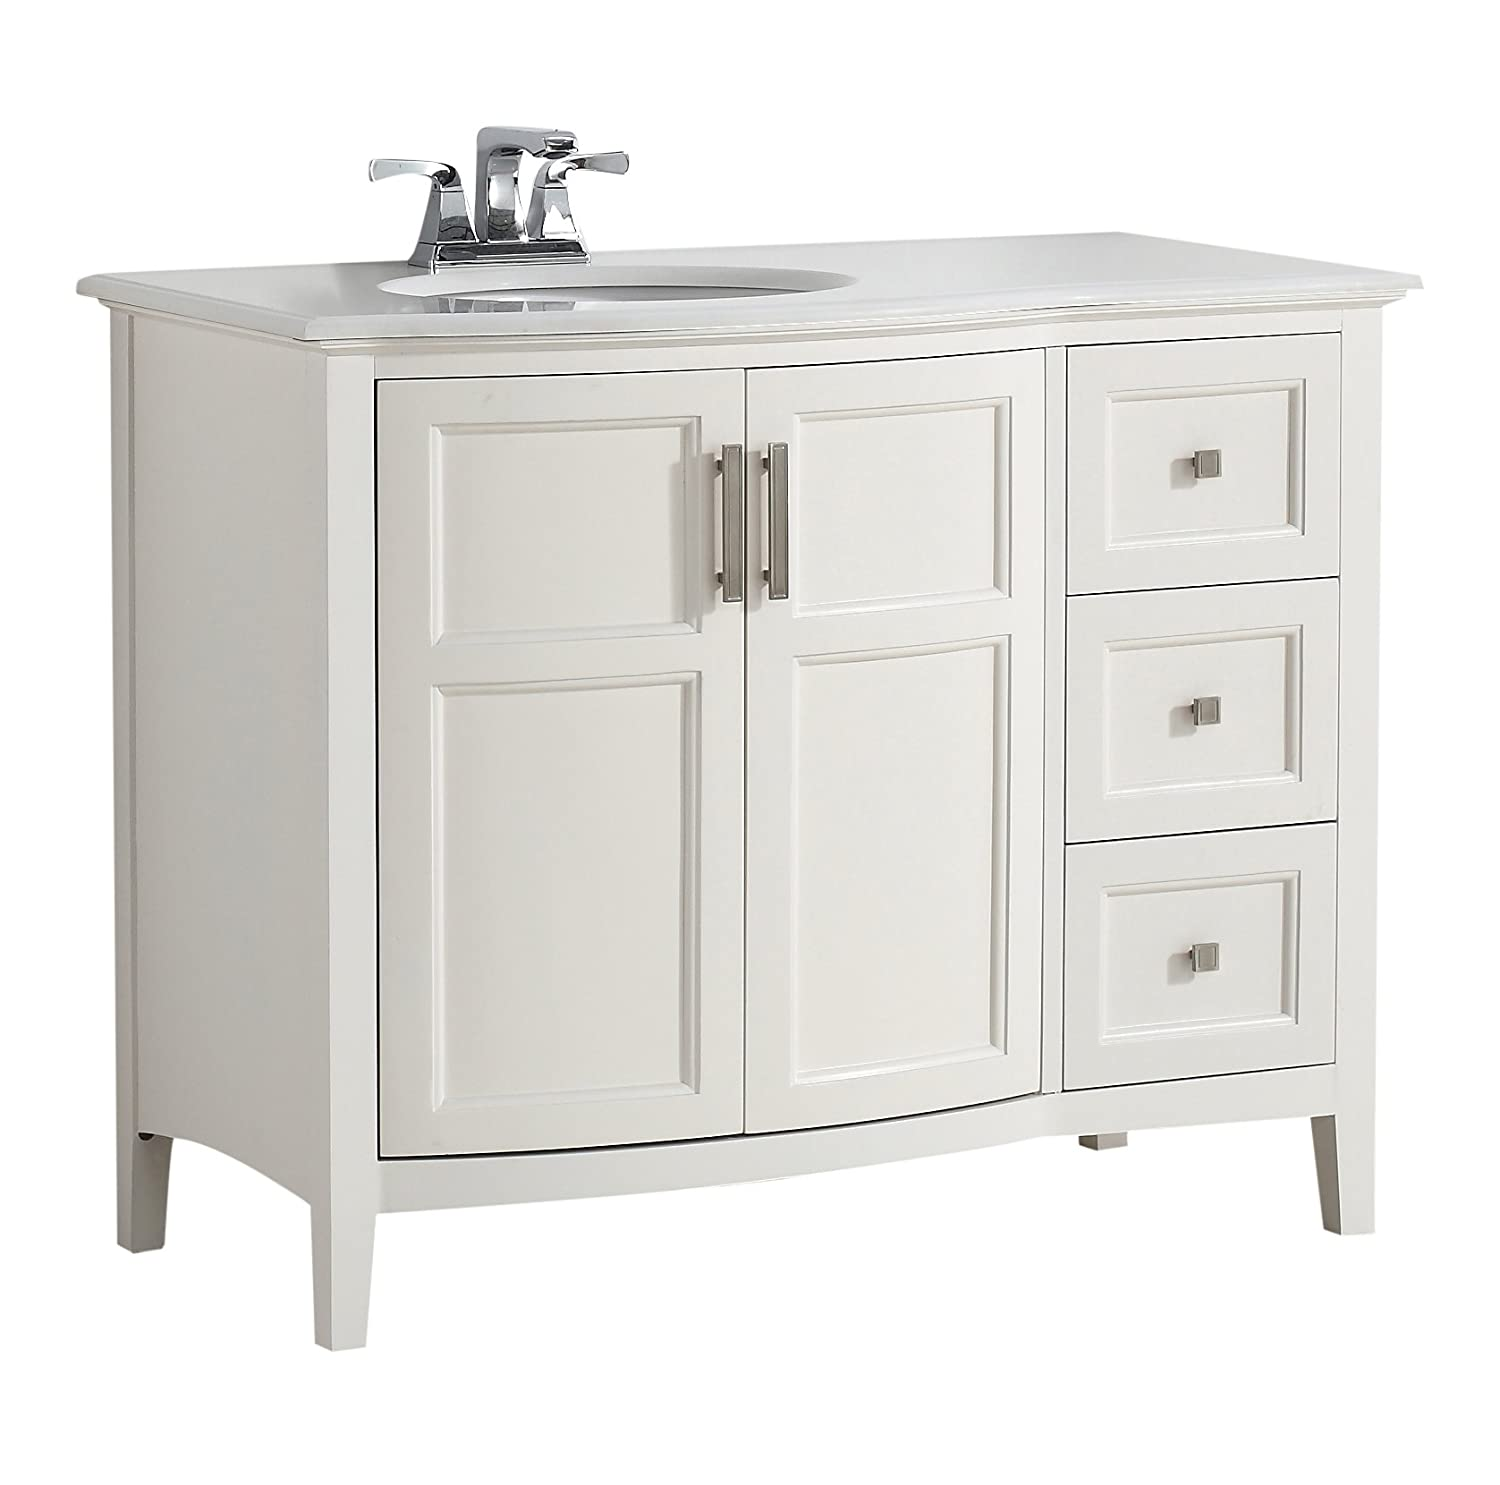 "Simpli Home Winston 42"" Bath Vanity Rounded Front with Quartz"